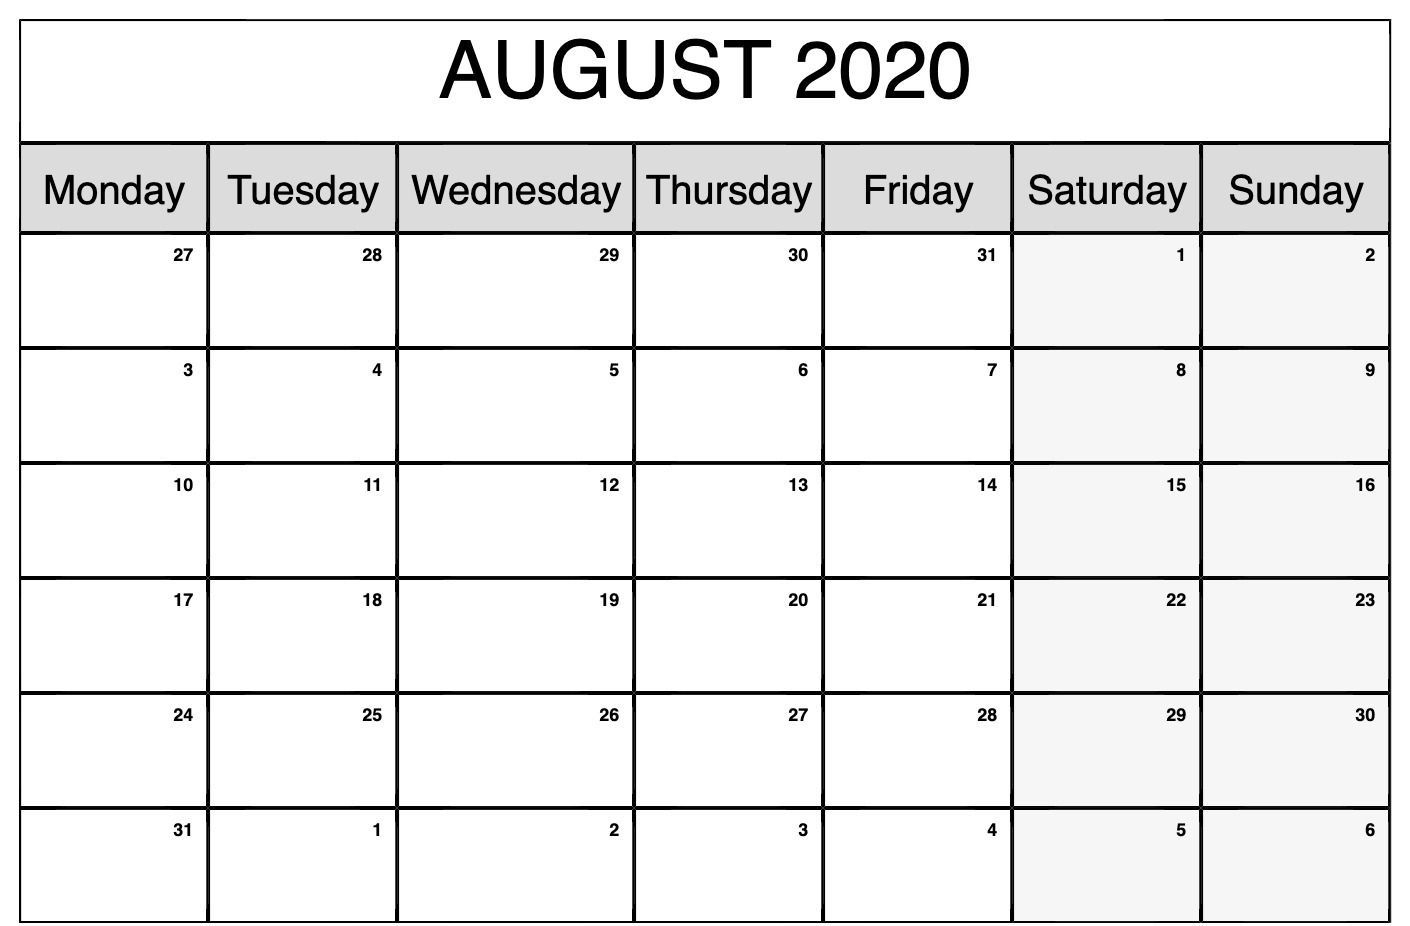 Monthly Calendar Template August 2020 | Editable Calendar